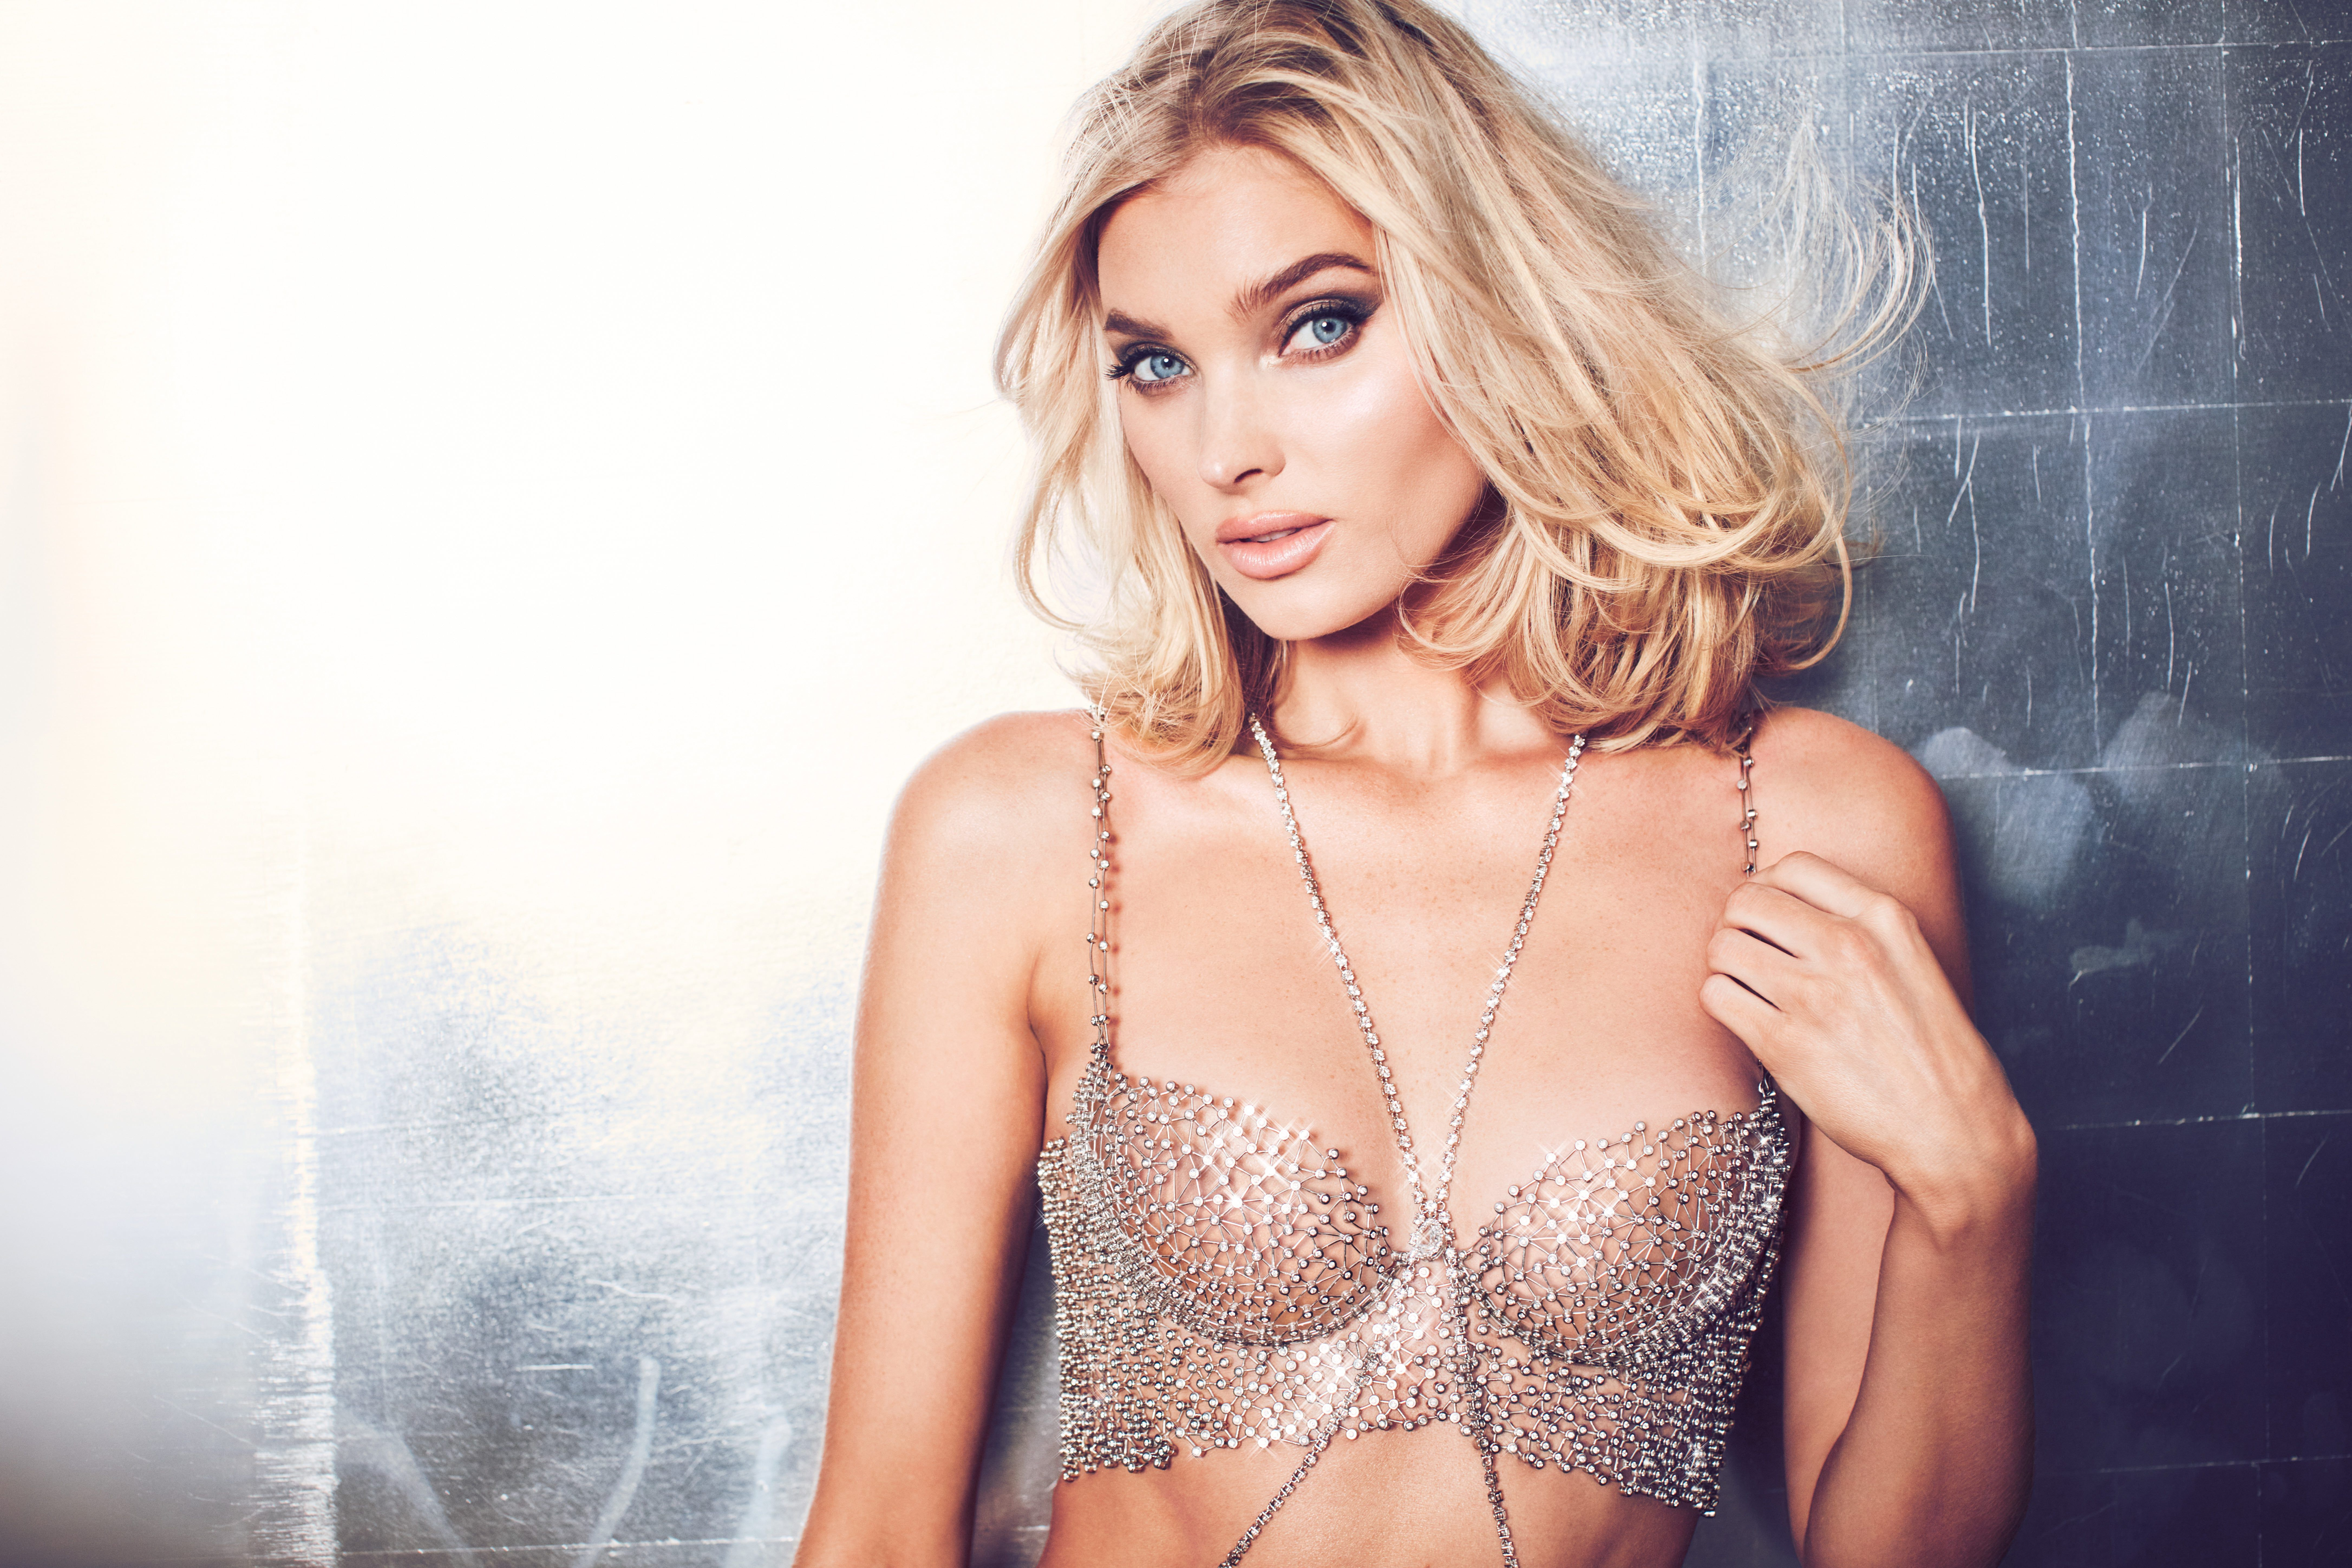 a93bd0bebc See Photos of All the Victoria s Secret Fantasy Bras Through the Years